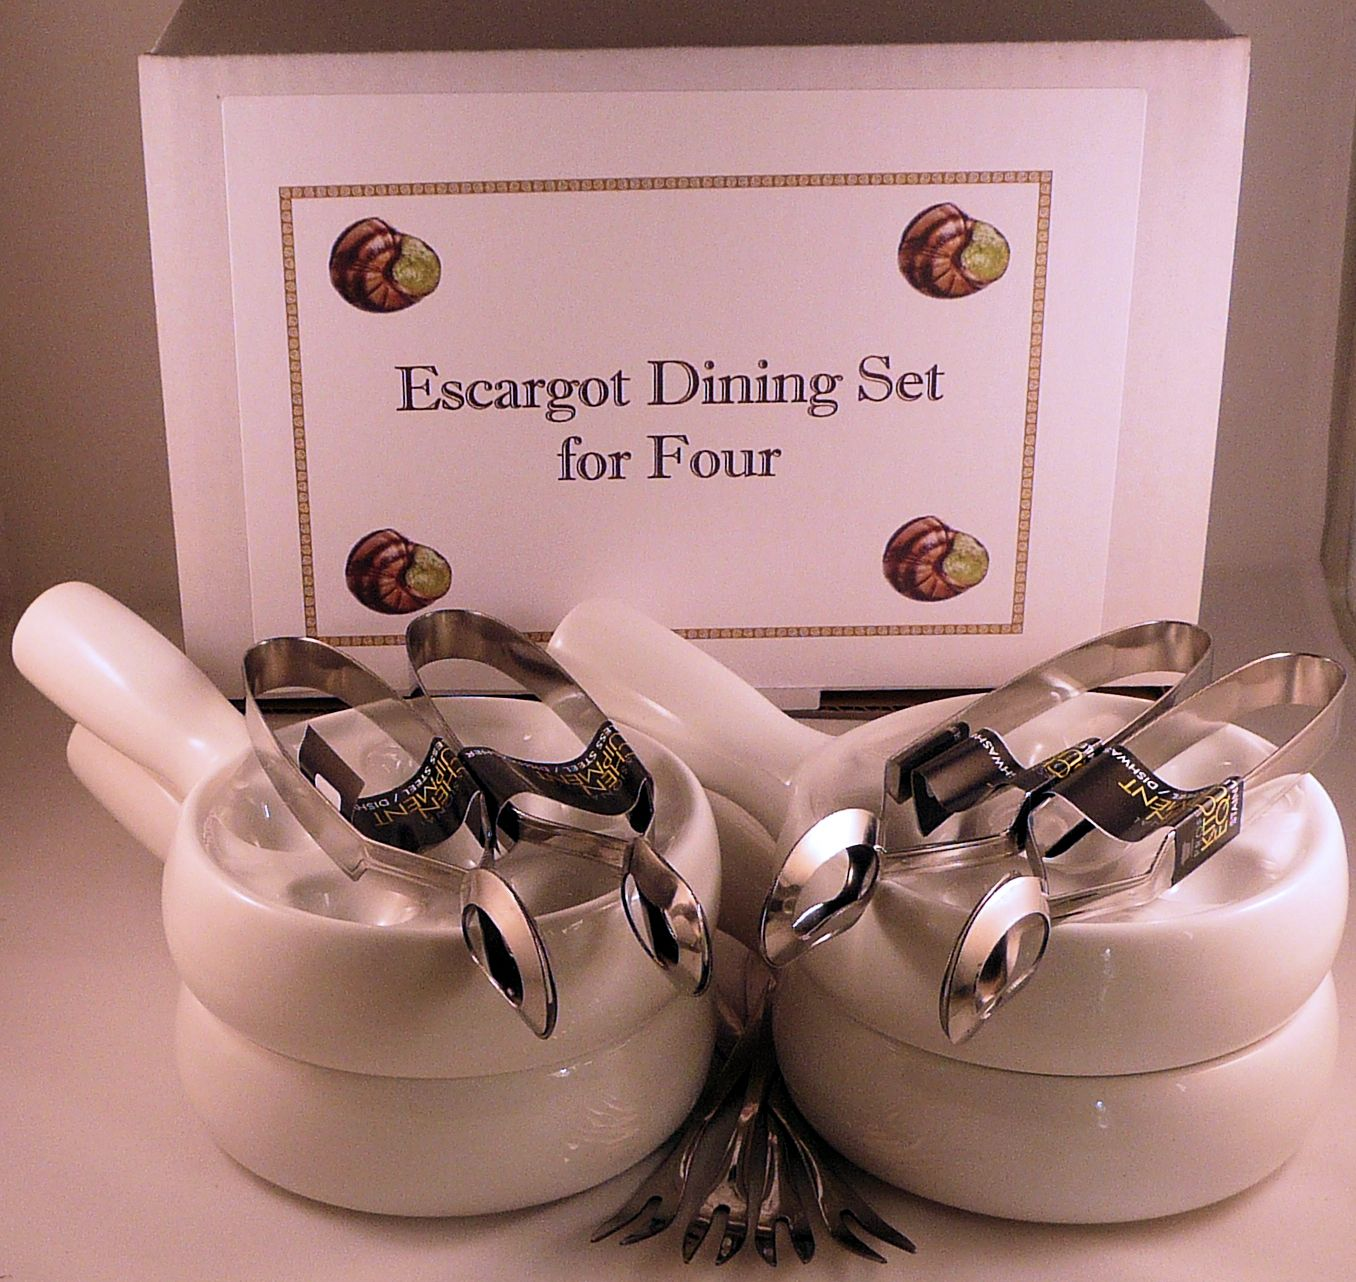 NOW IN STOCK Snail Escargot Dining set for FOUR 4 Vitrified Ceramic 6 hole  dishes 4 snail tongs 4 snail forks.